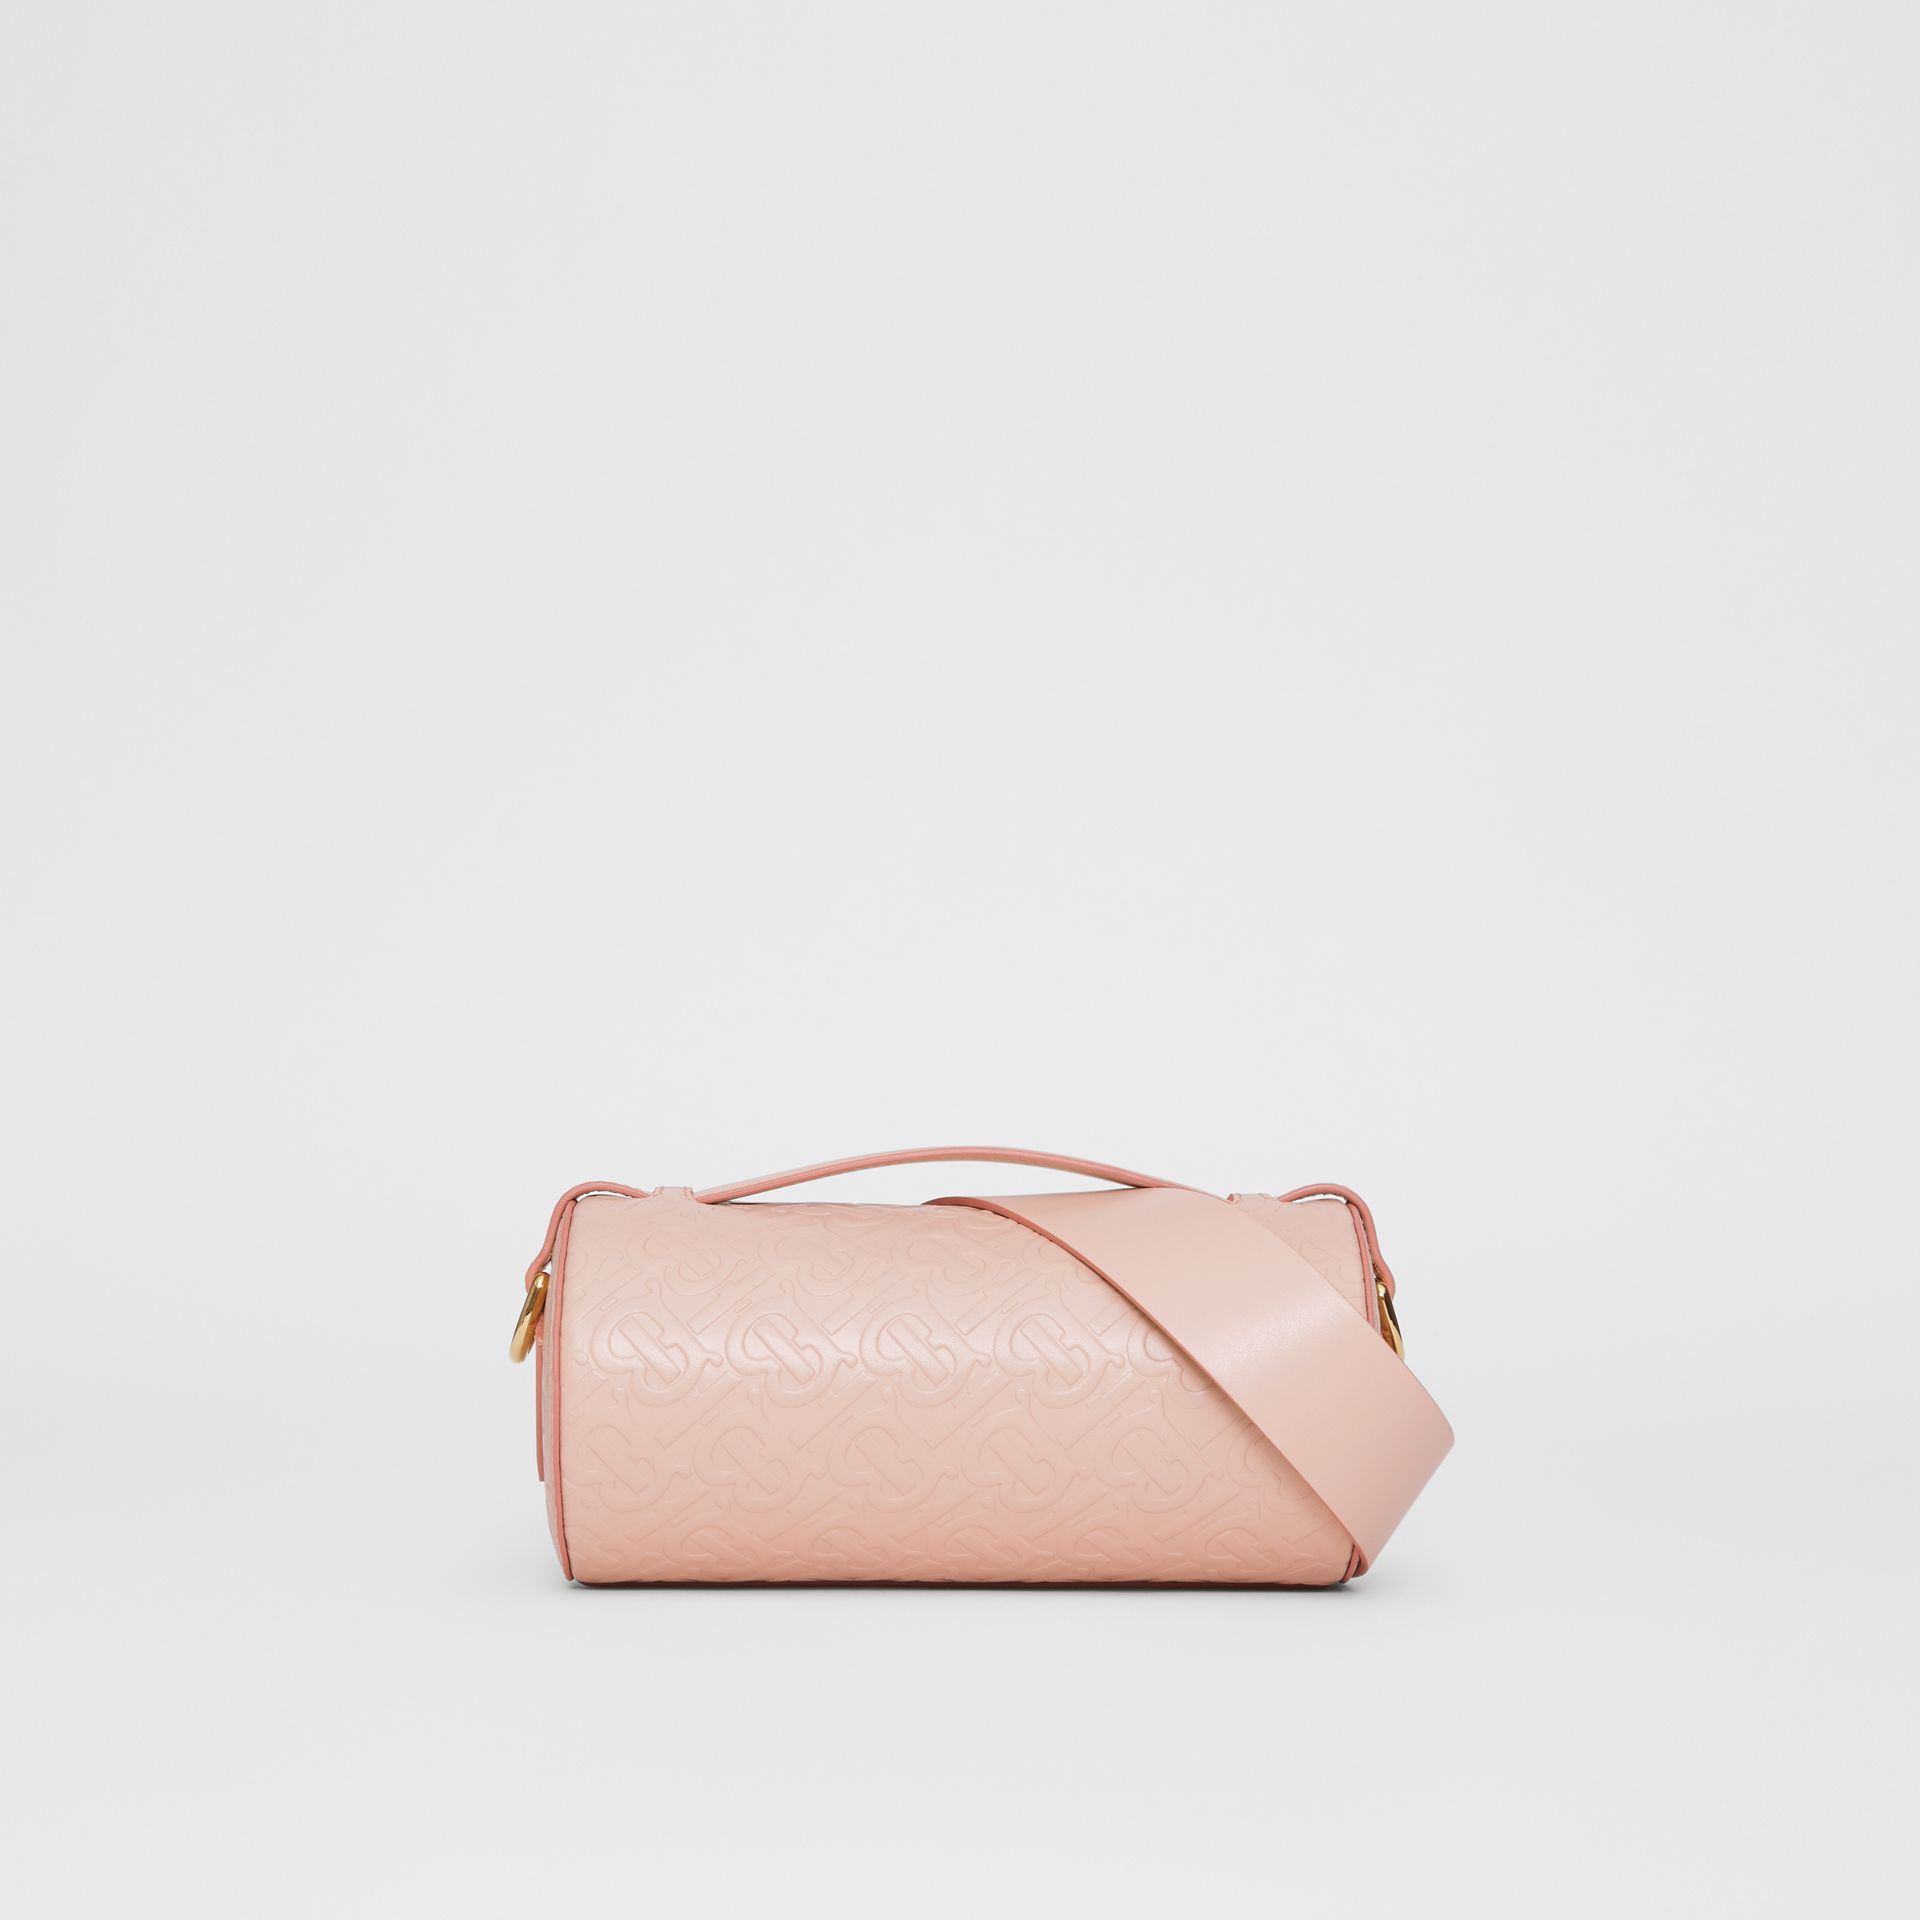 Sac The Barrel en cuir Monogram (Beige Rose) - Femme | Burberry Canada - photo de la galerie 7